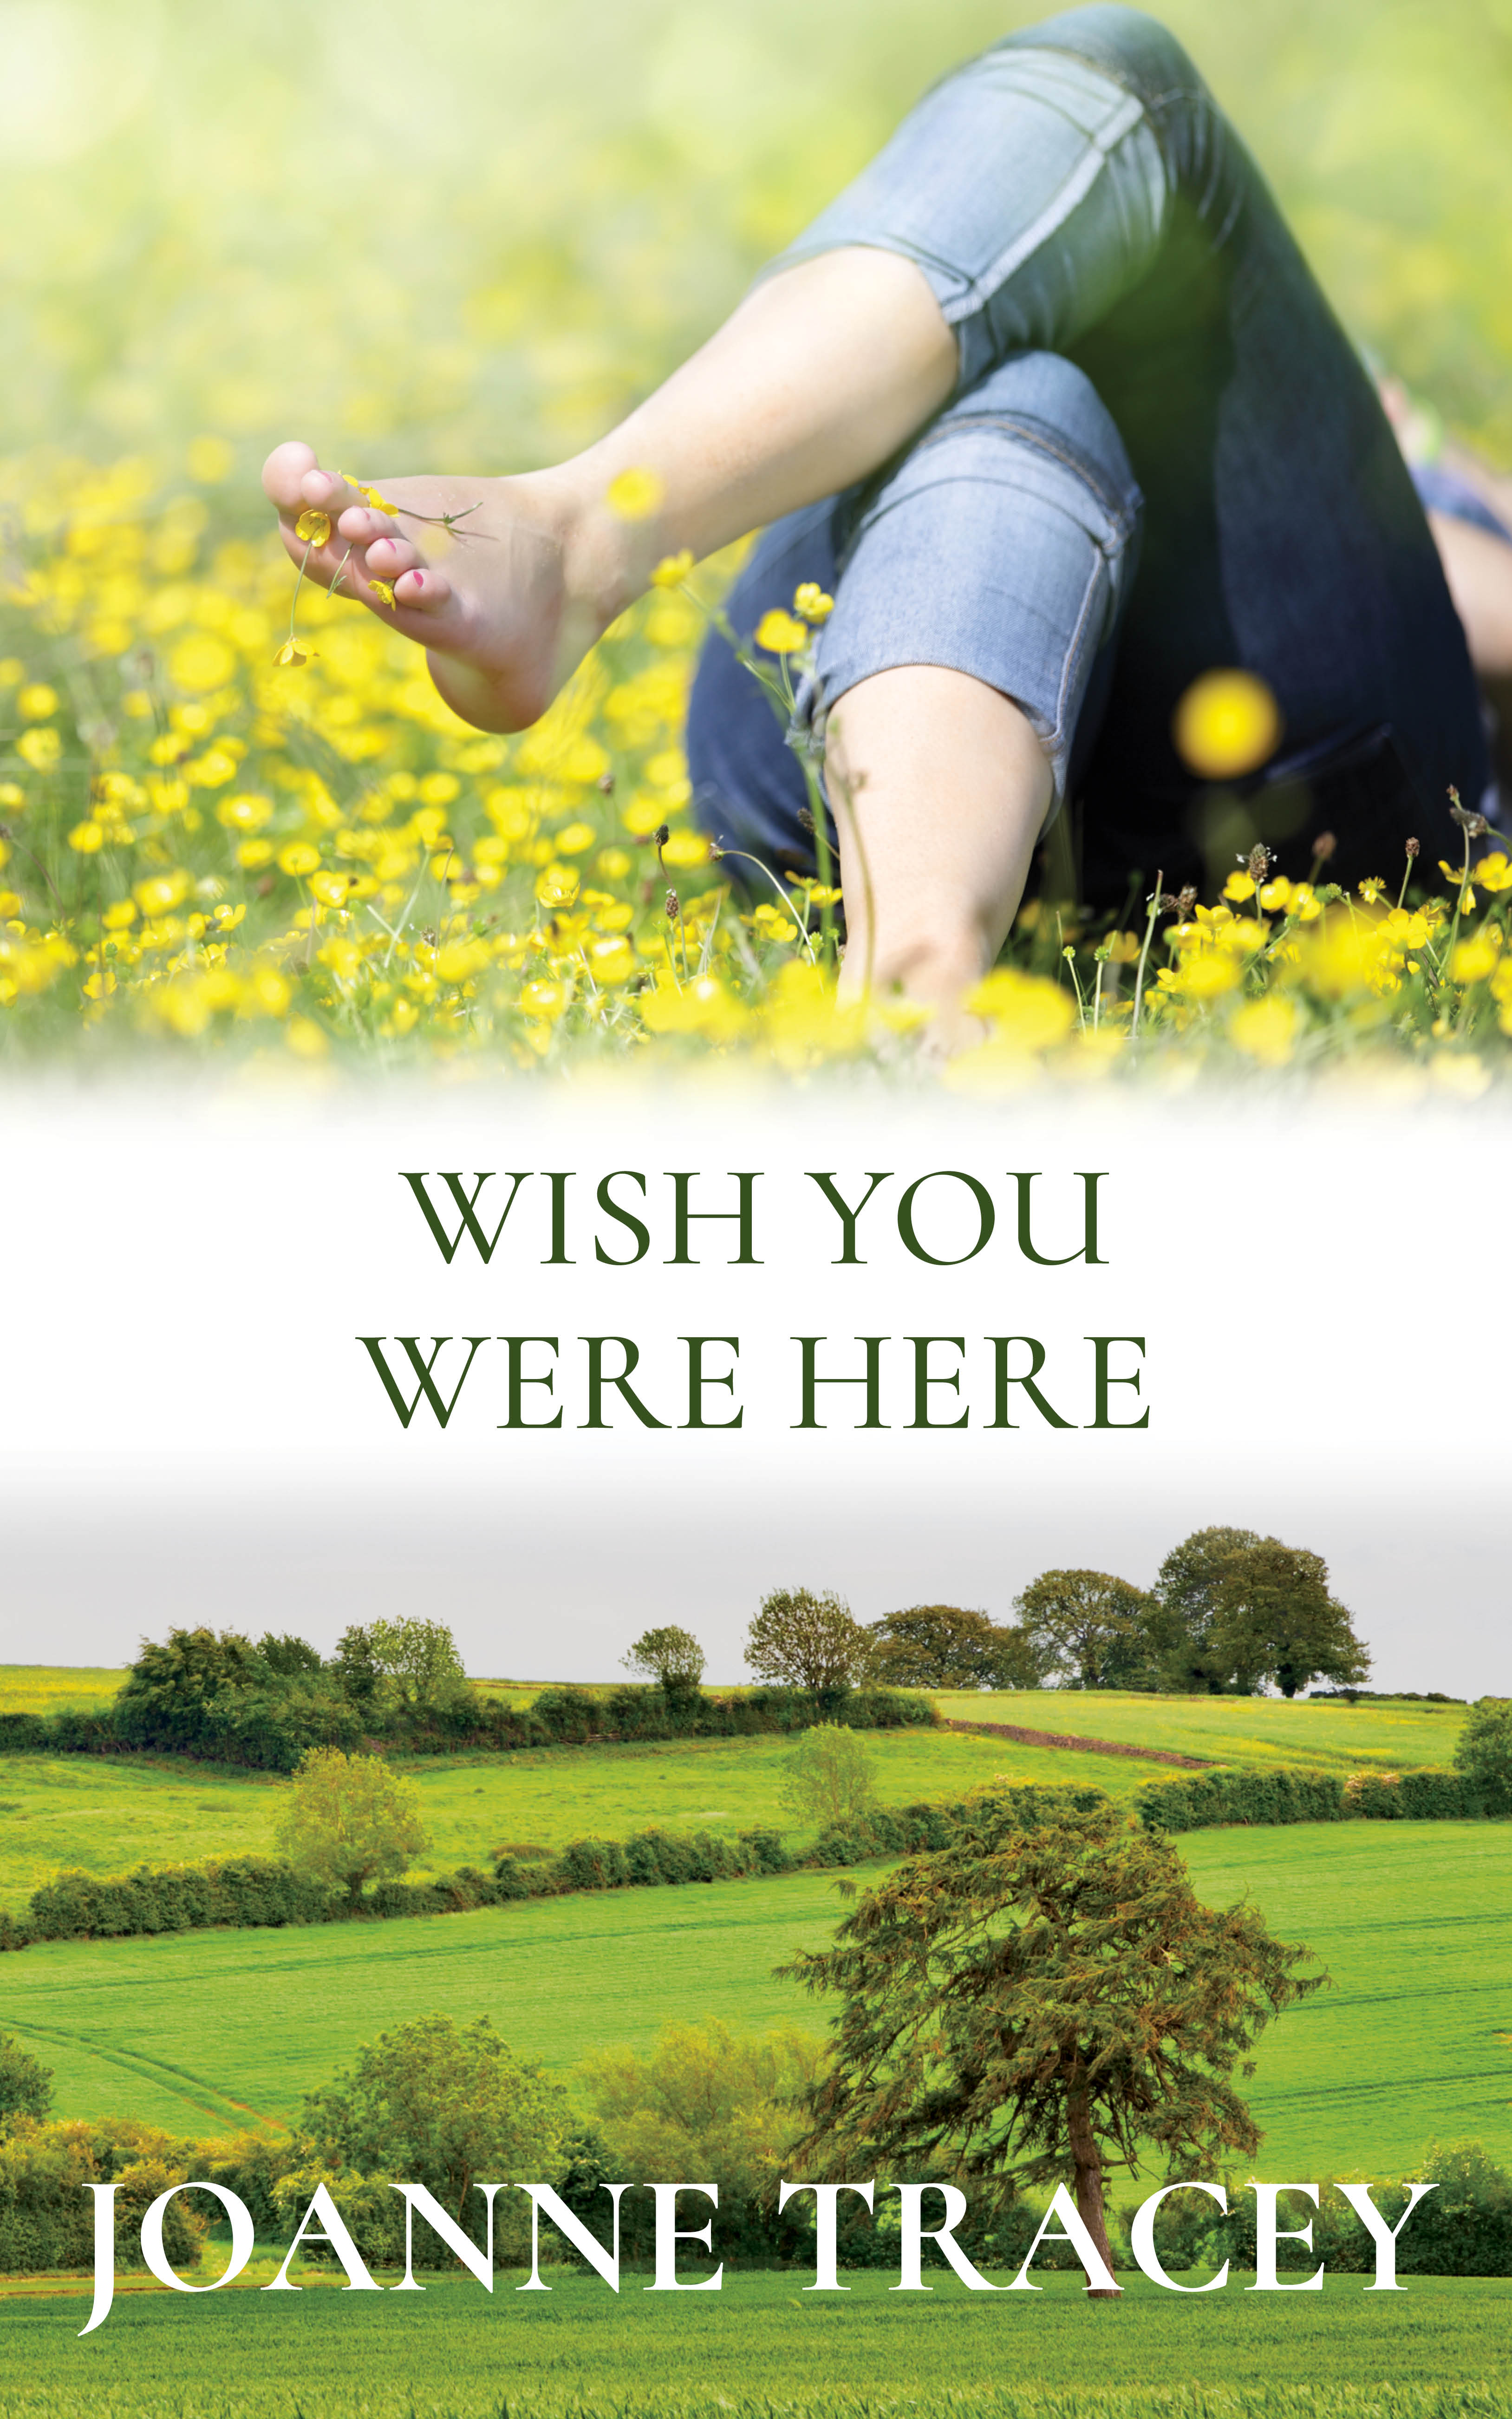 Wish You Were Here: Unveiling the Cover